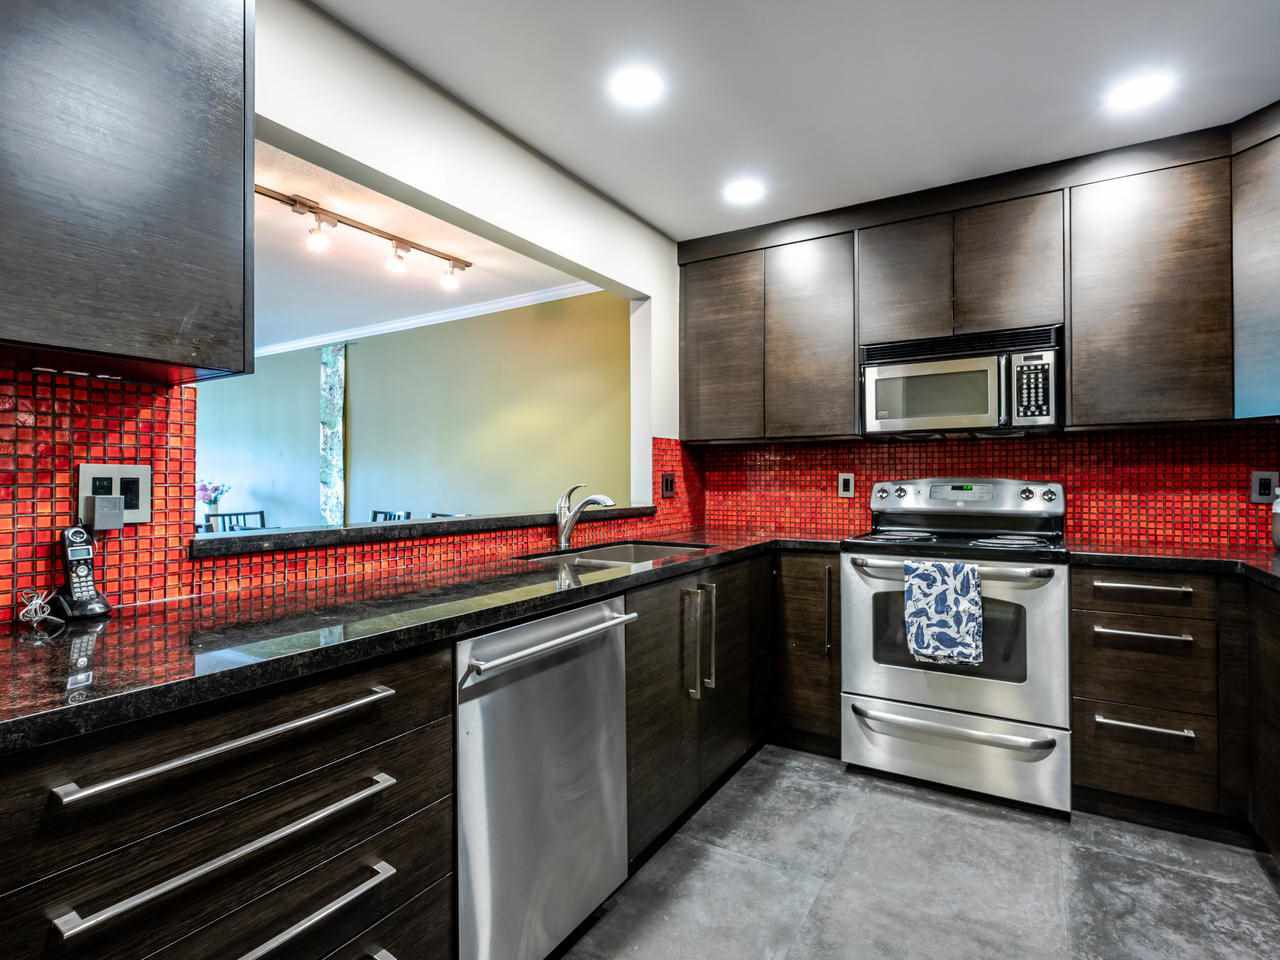 """Photo 15: Photos: 303 2288 W 12TH Avenue in Vancouver: Kitsilano Condo for sale in """"Connaught Point"""" (Vancouver West)  : MLS®# R2494985"""